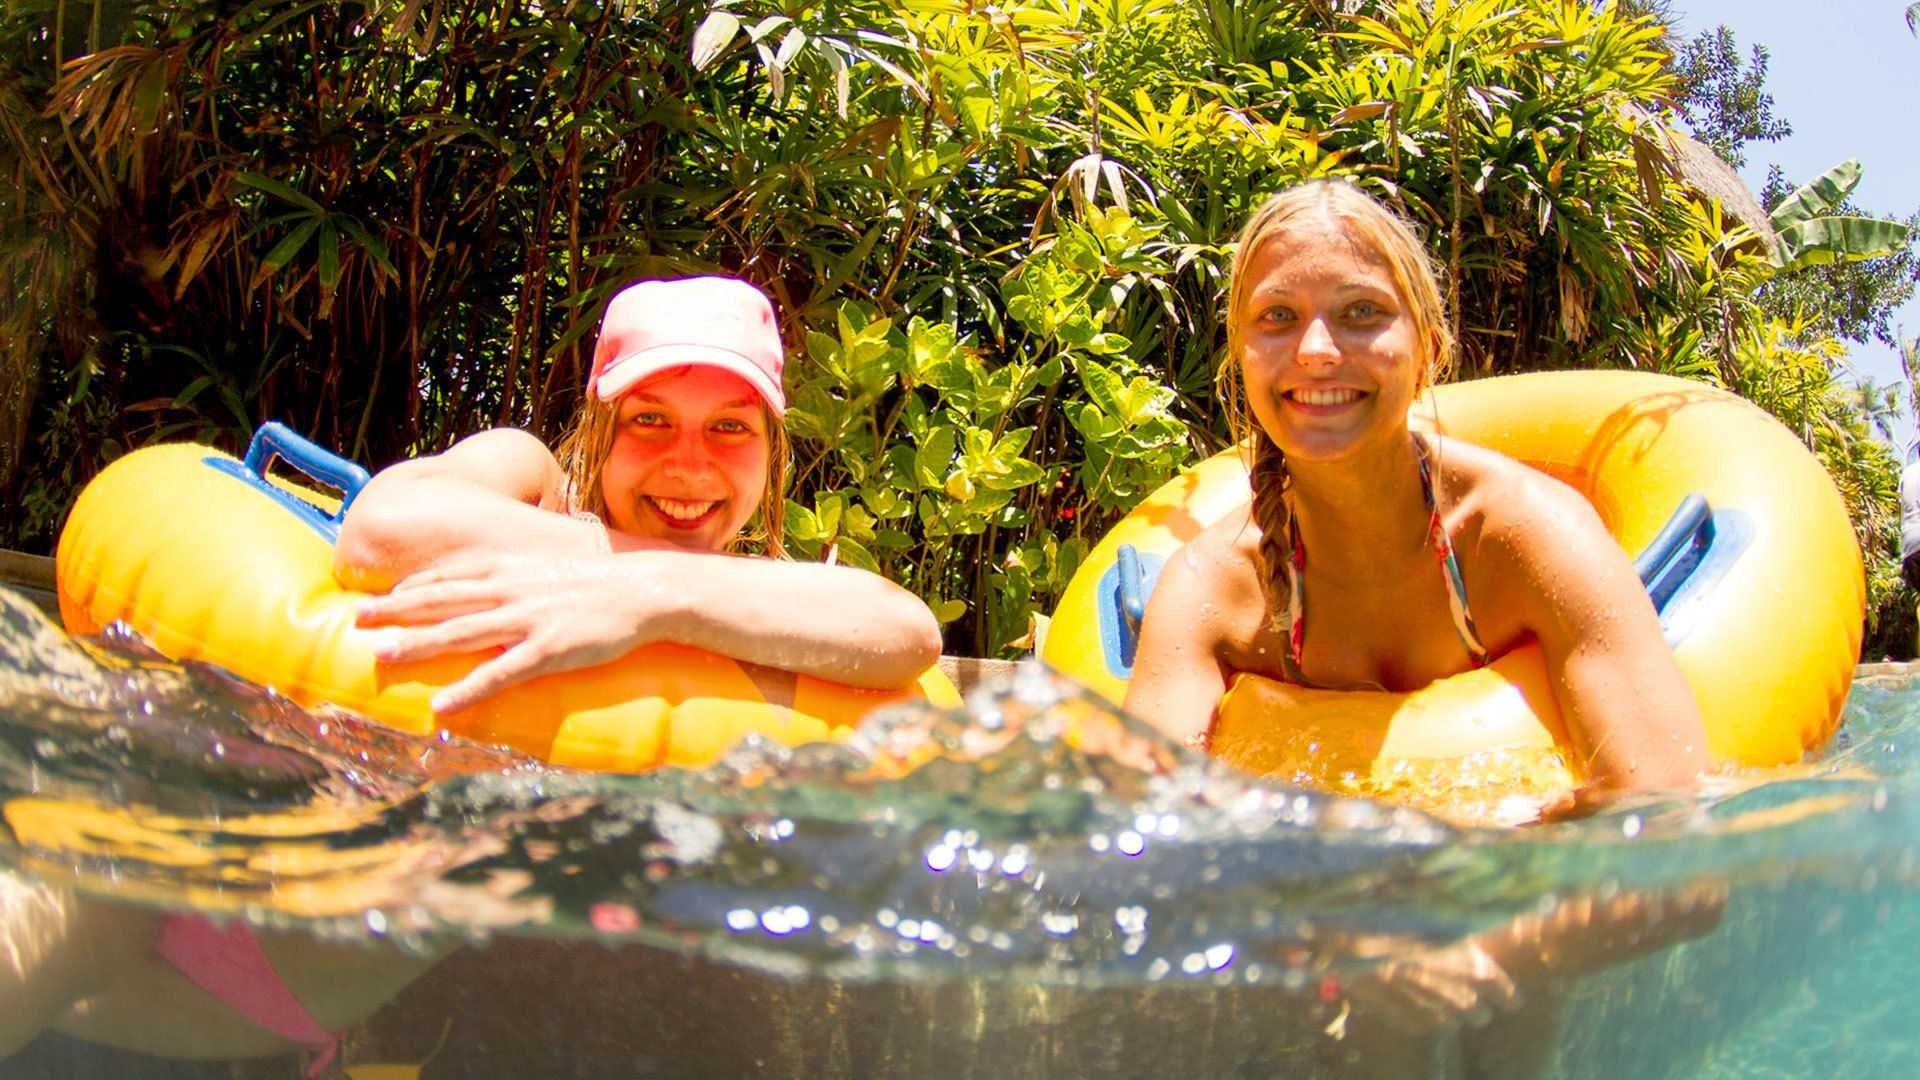 Two women on a lazy river